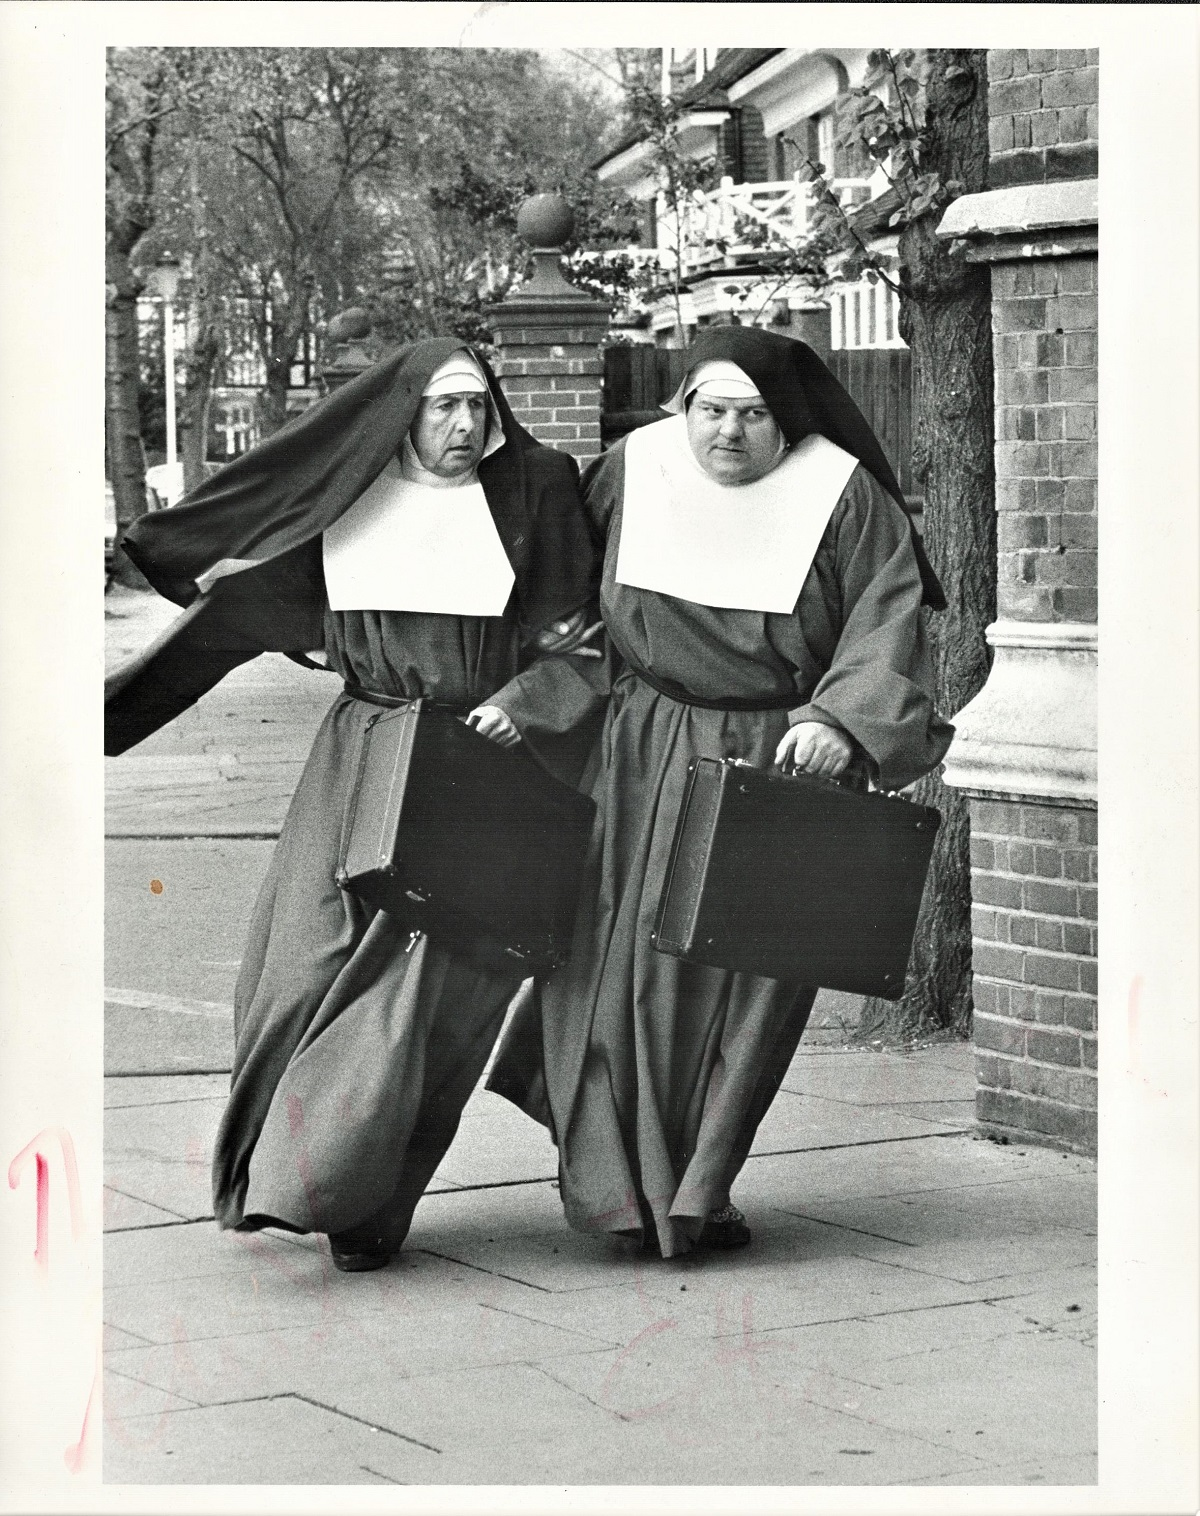 Nuns on the Run 10x8 black and white photograph picturing Eric Idle and Robbie Coltrane. Signed by